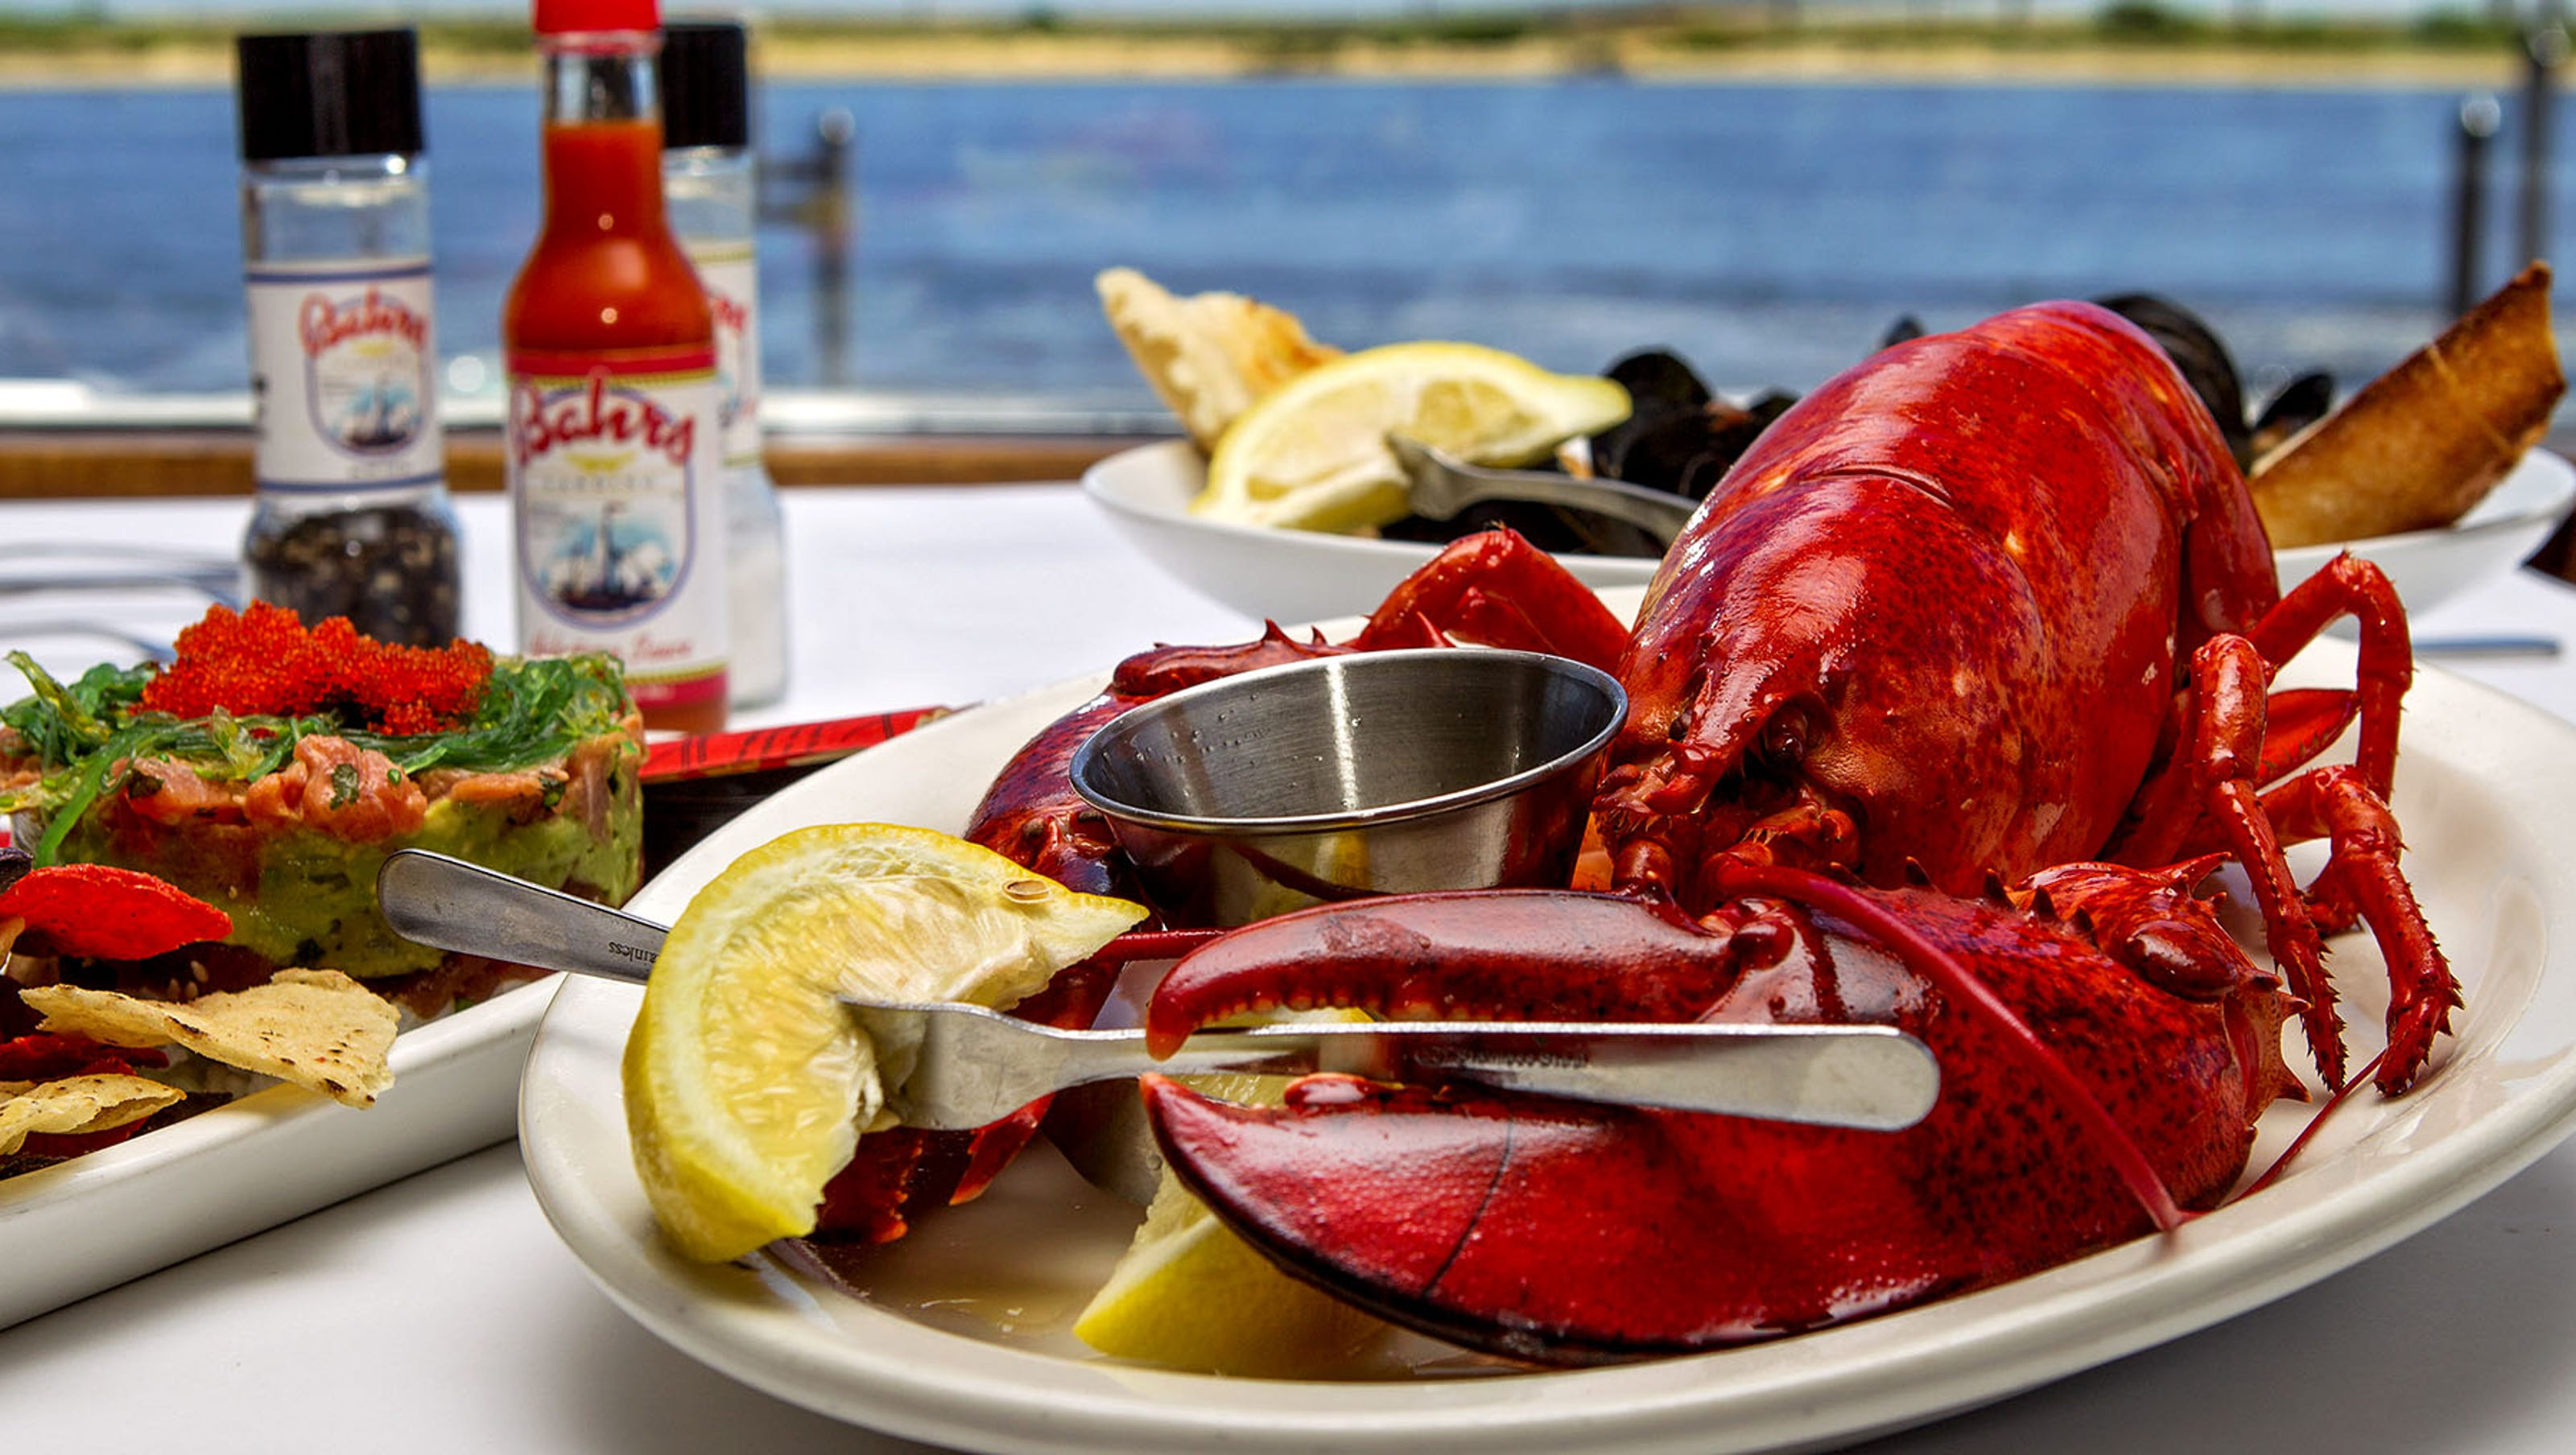 national lobster day is friday: 7 shore spots for great lobster